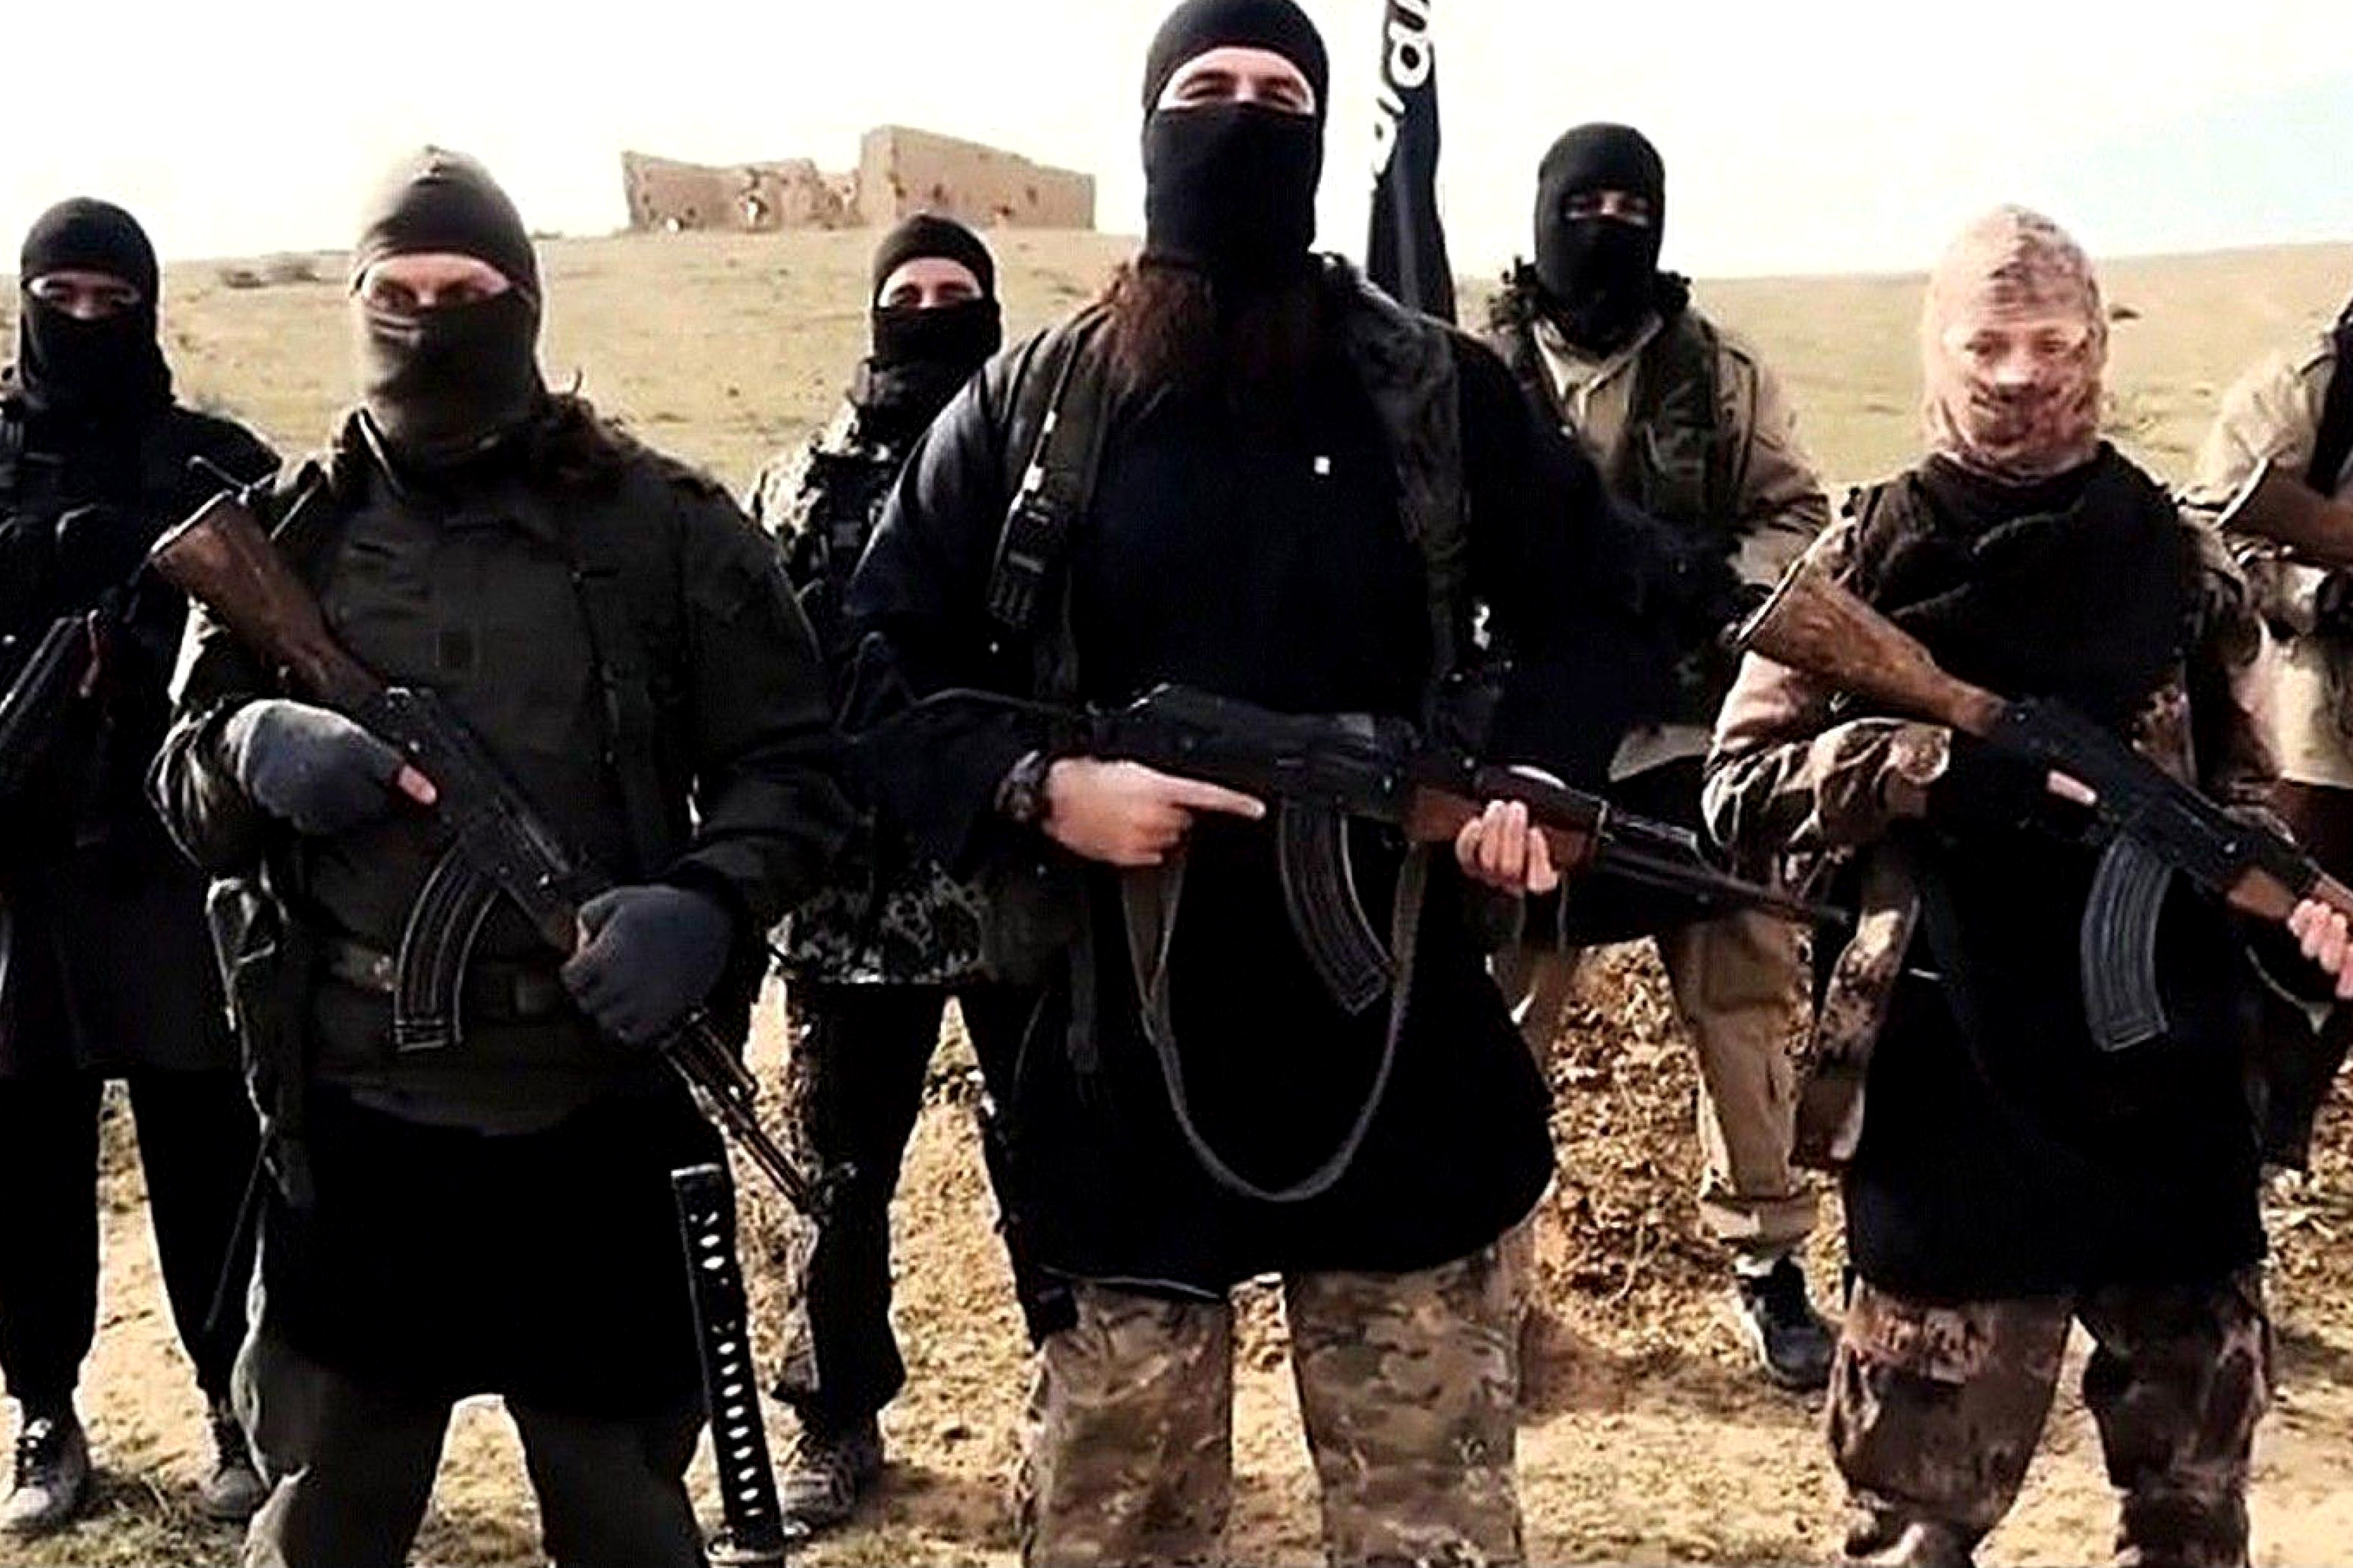 isis goa Afghan IS ISIS song broadcasted through radio today